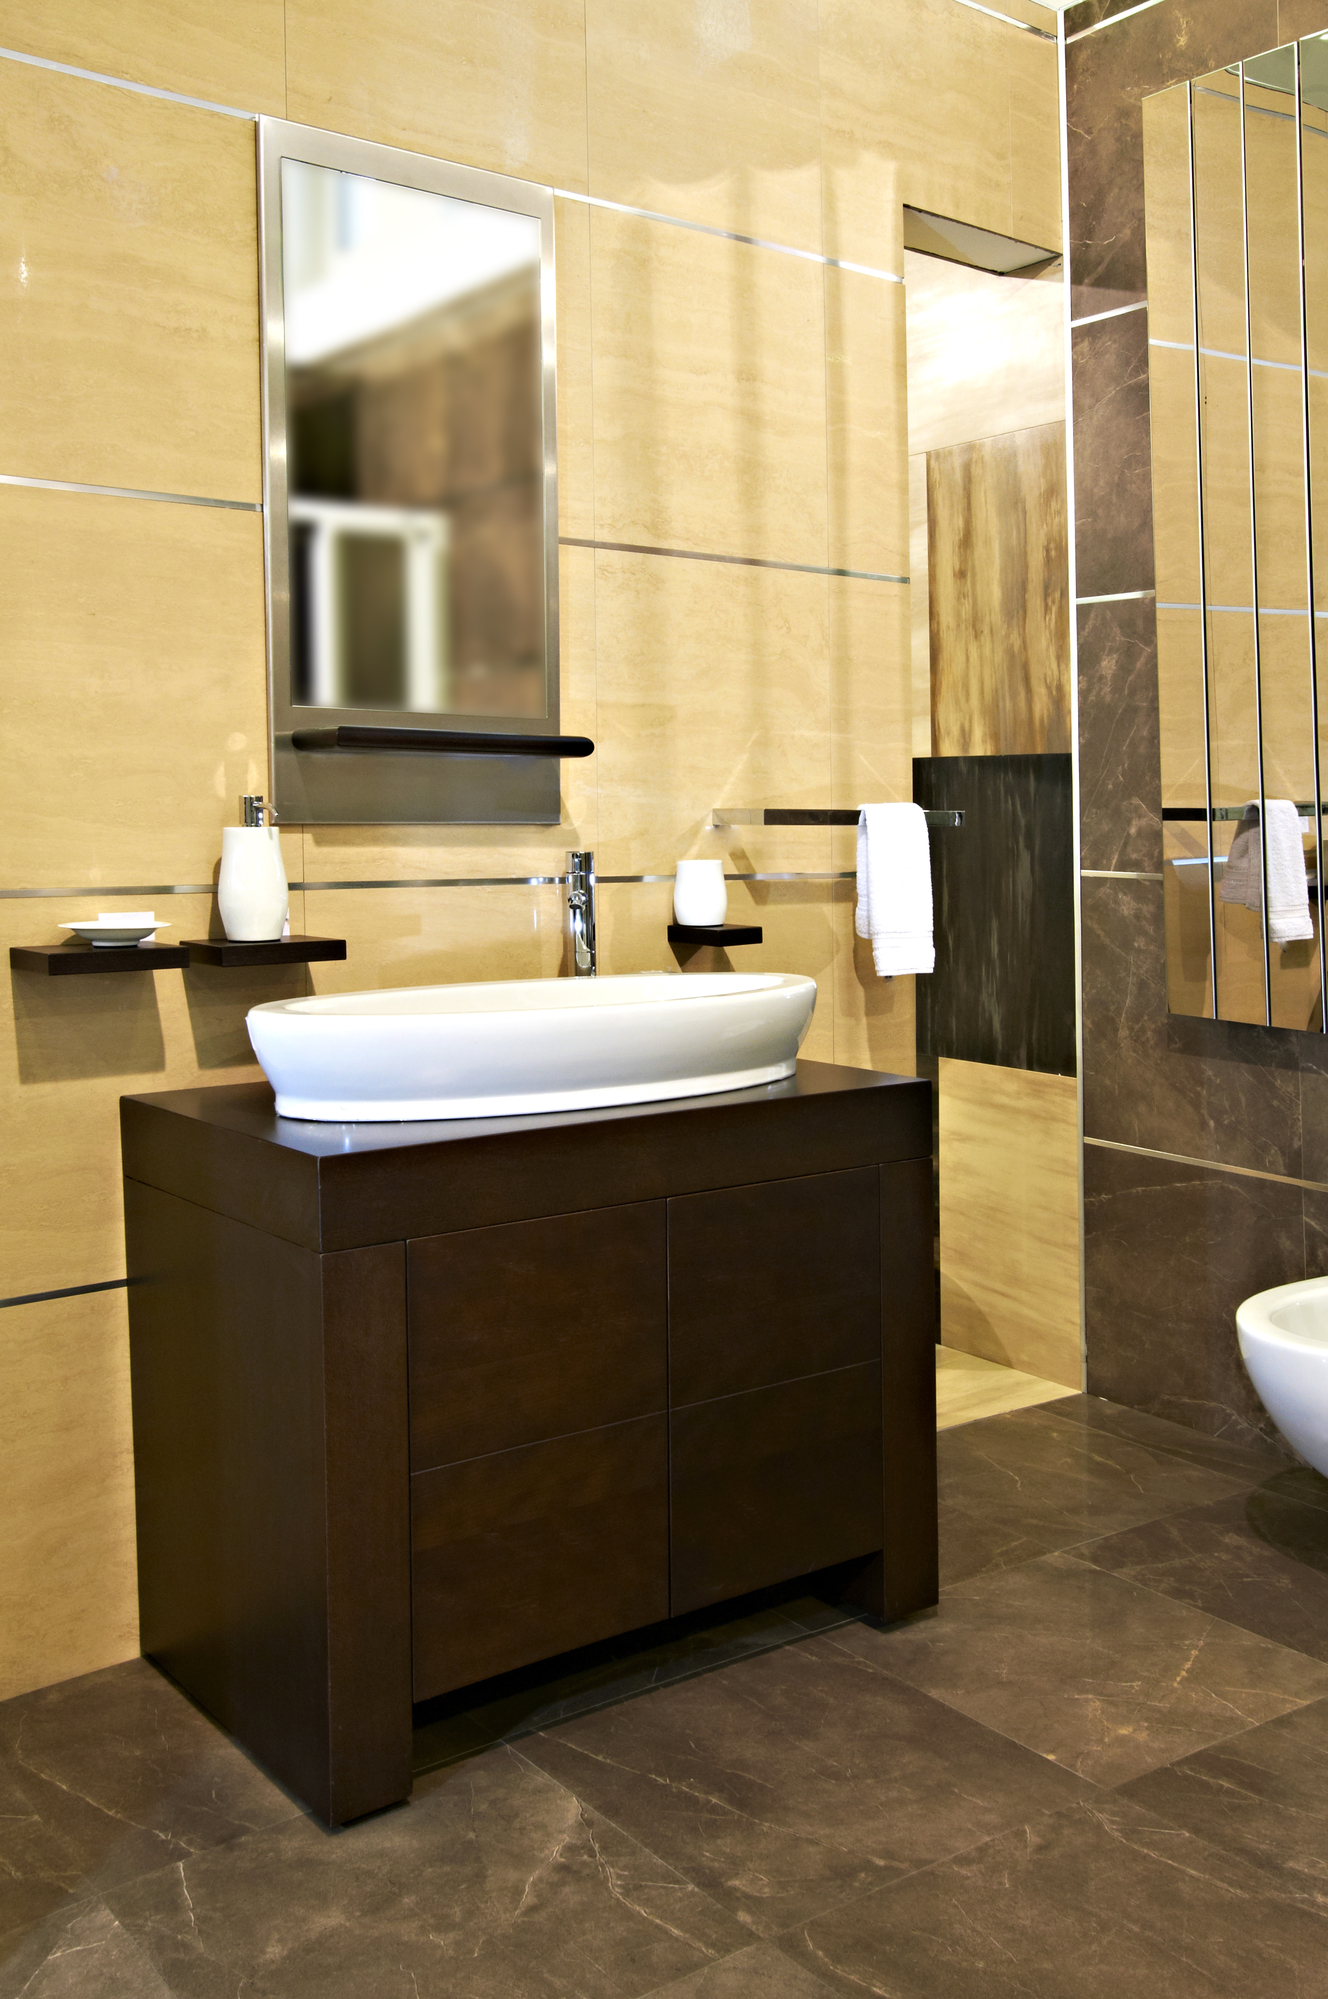 3 Bathroom Trends of 2019 to Inspire Your Next Remodel